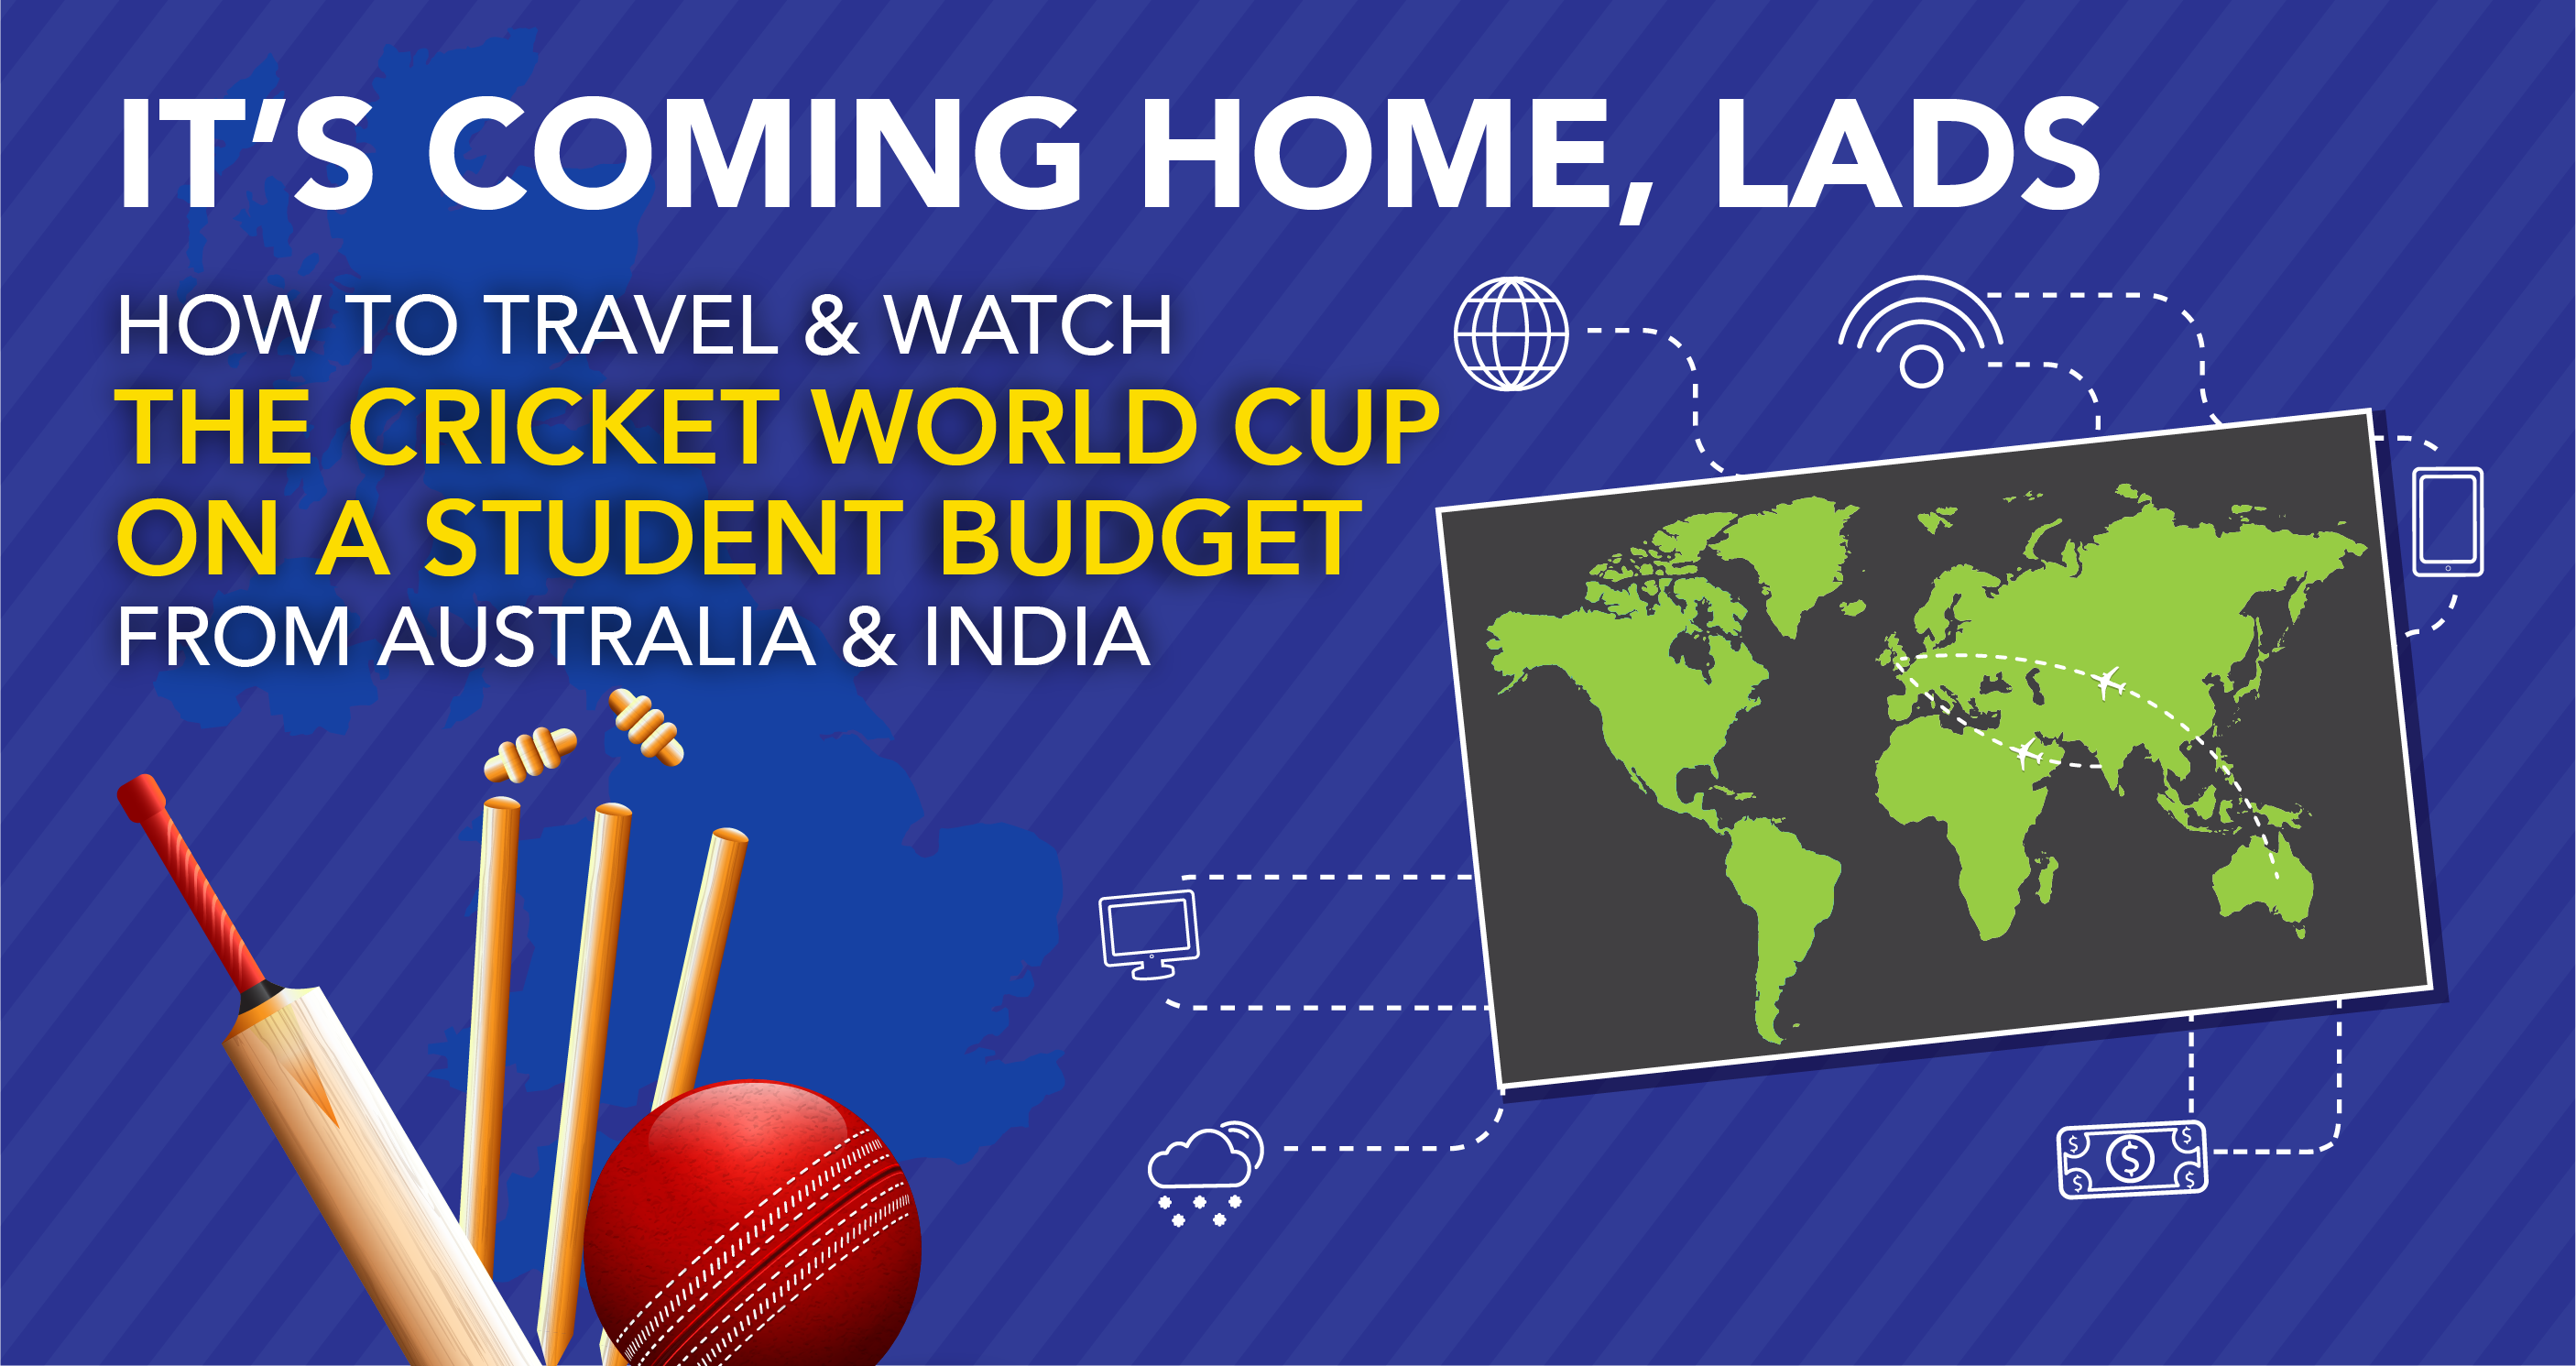 We've Planned Your Trip To The UK For The Cricket World Cup On A Student Budget